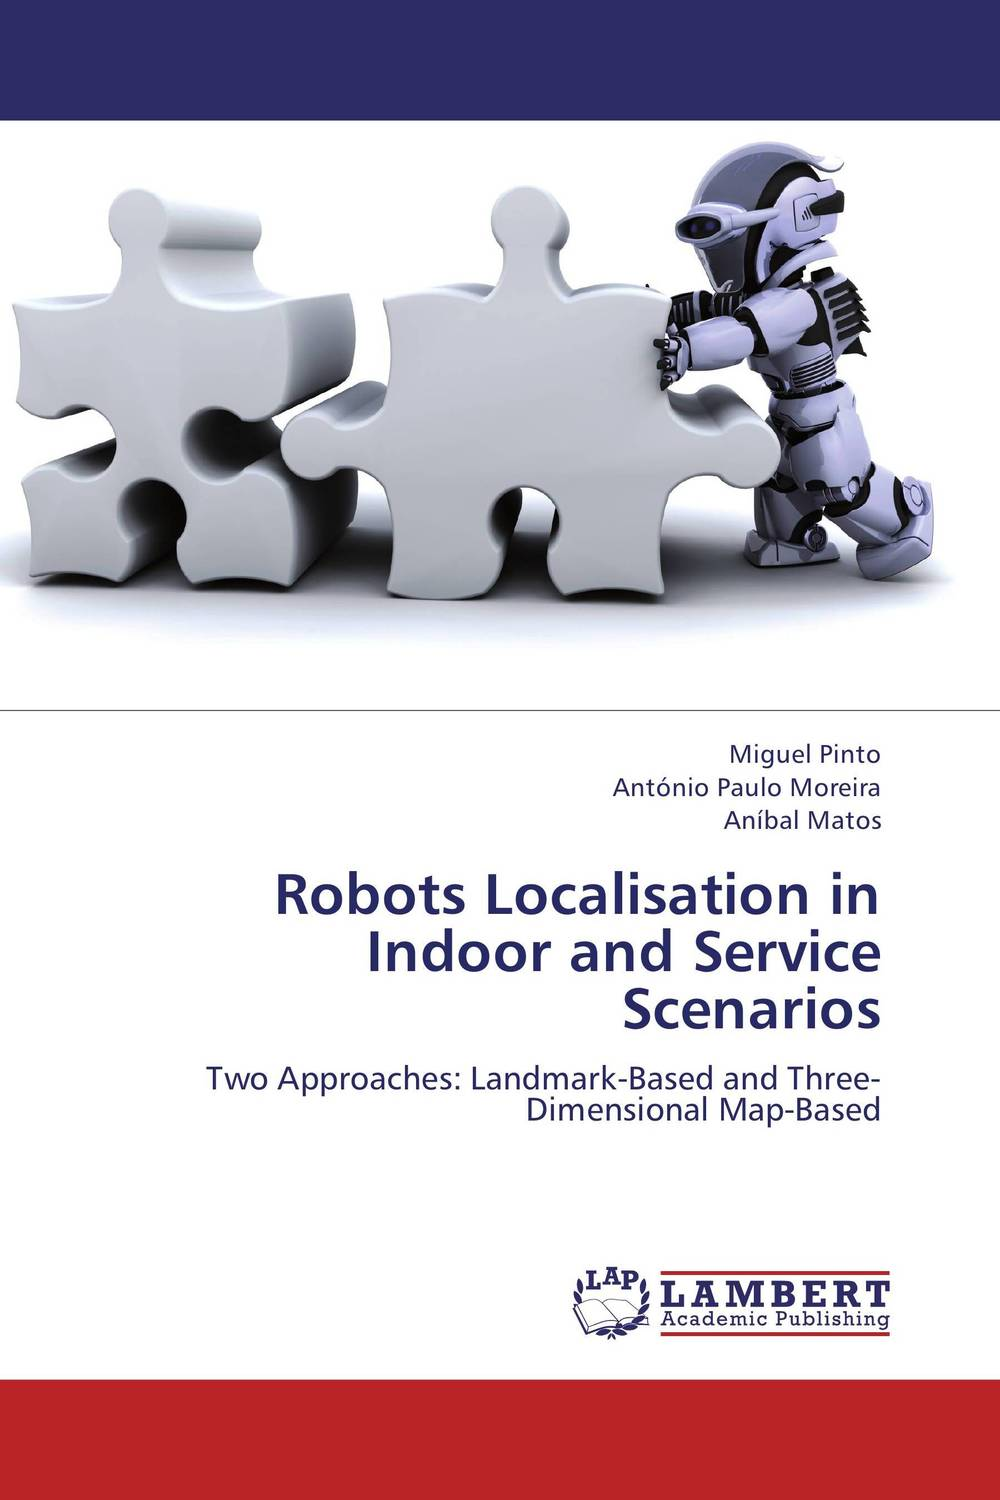 Robots Localisation in Indoor and Service Scenarios mpso and mga approaches for mobile robot navigation